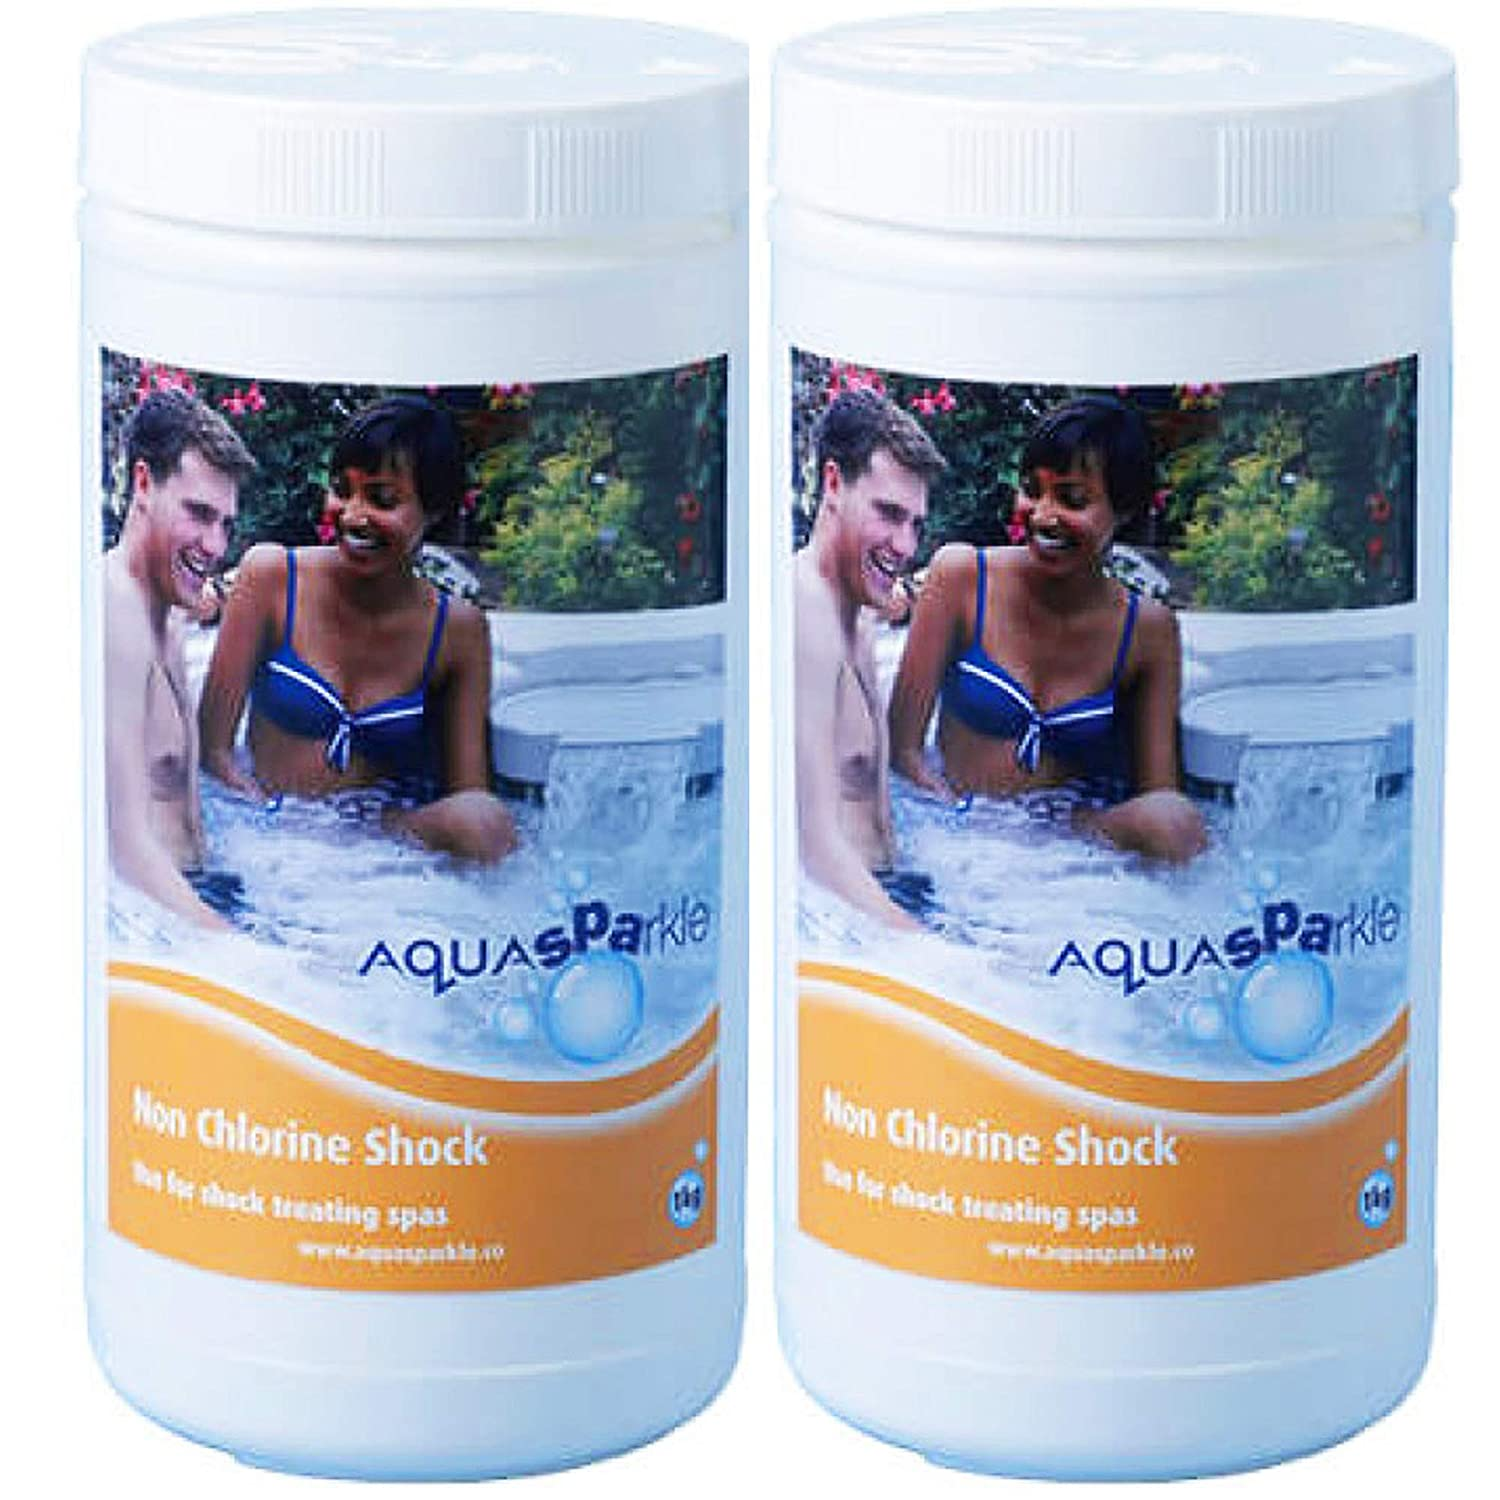 AQUASPARKLE 2KG Quality Non Chlorine Shock Spas Hot Tubs Pool FOR CHLORINE AND BROMINE USERS CPC